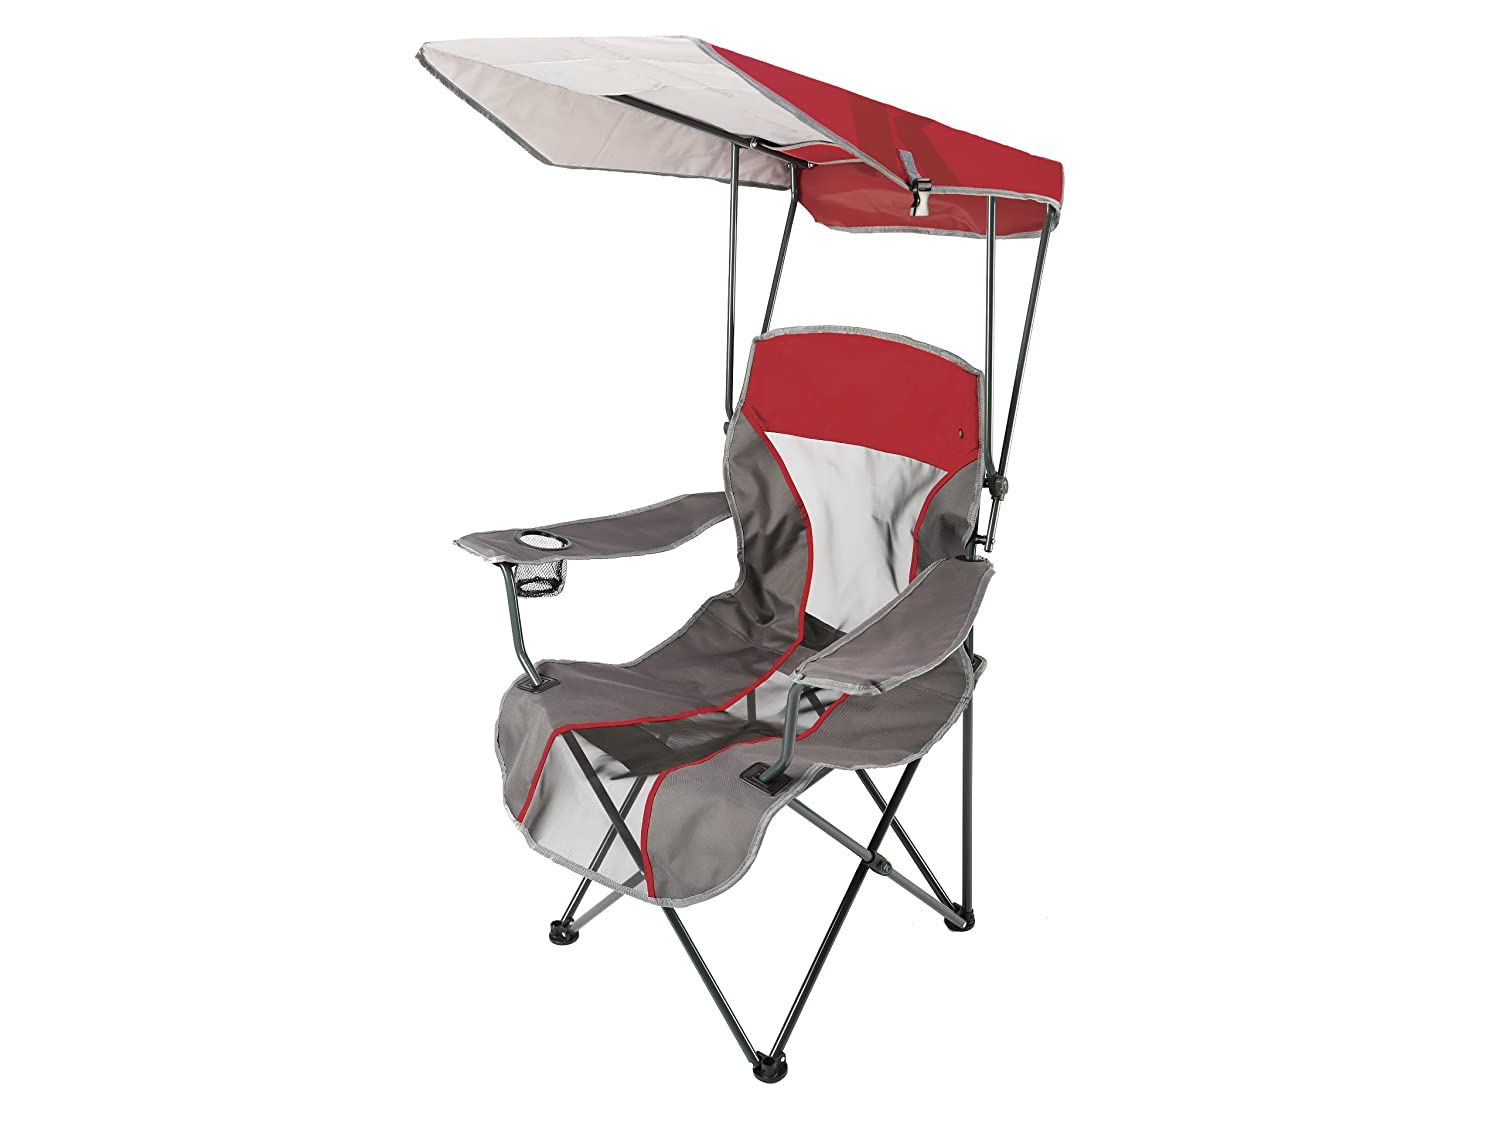 Top 10 Best Summer Folding Beach Chairs Review 2019 2020